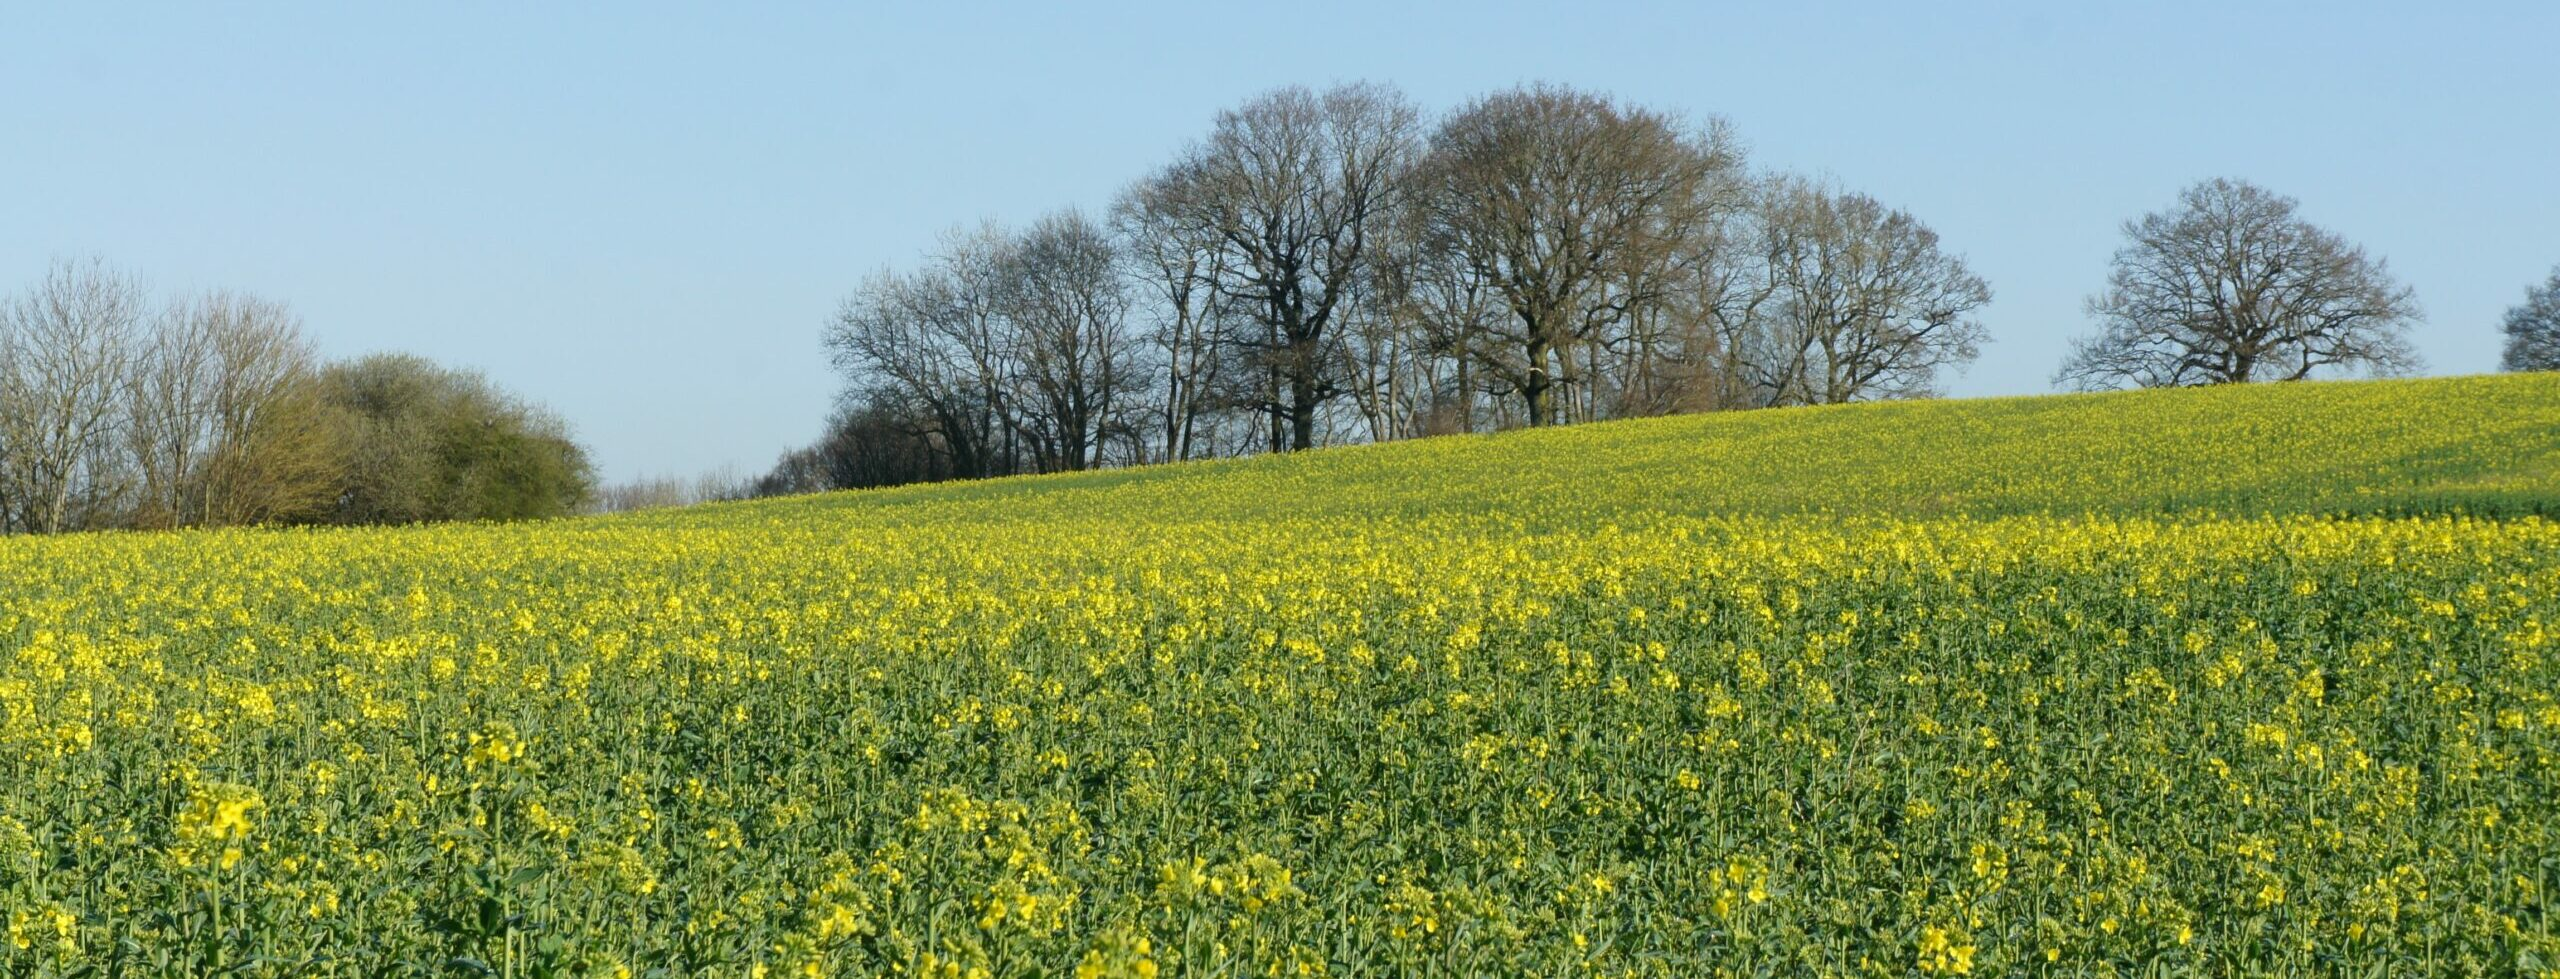 Looking NW across Rupert's Field planted with ripening oilseed rape on Morghew Park Estate, 09:08 30.03.21